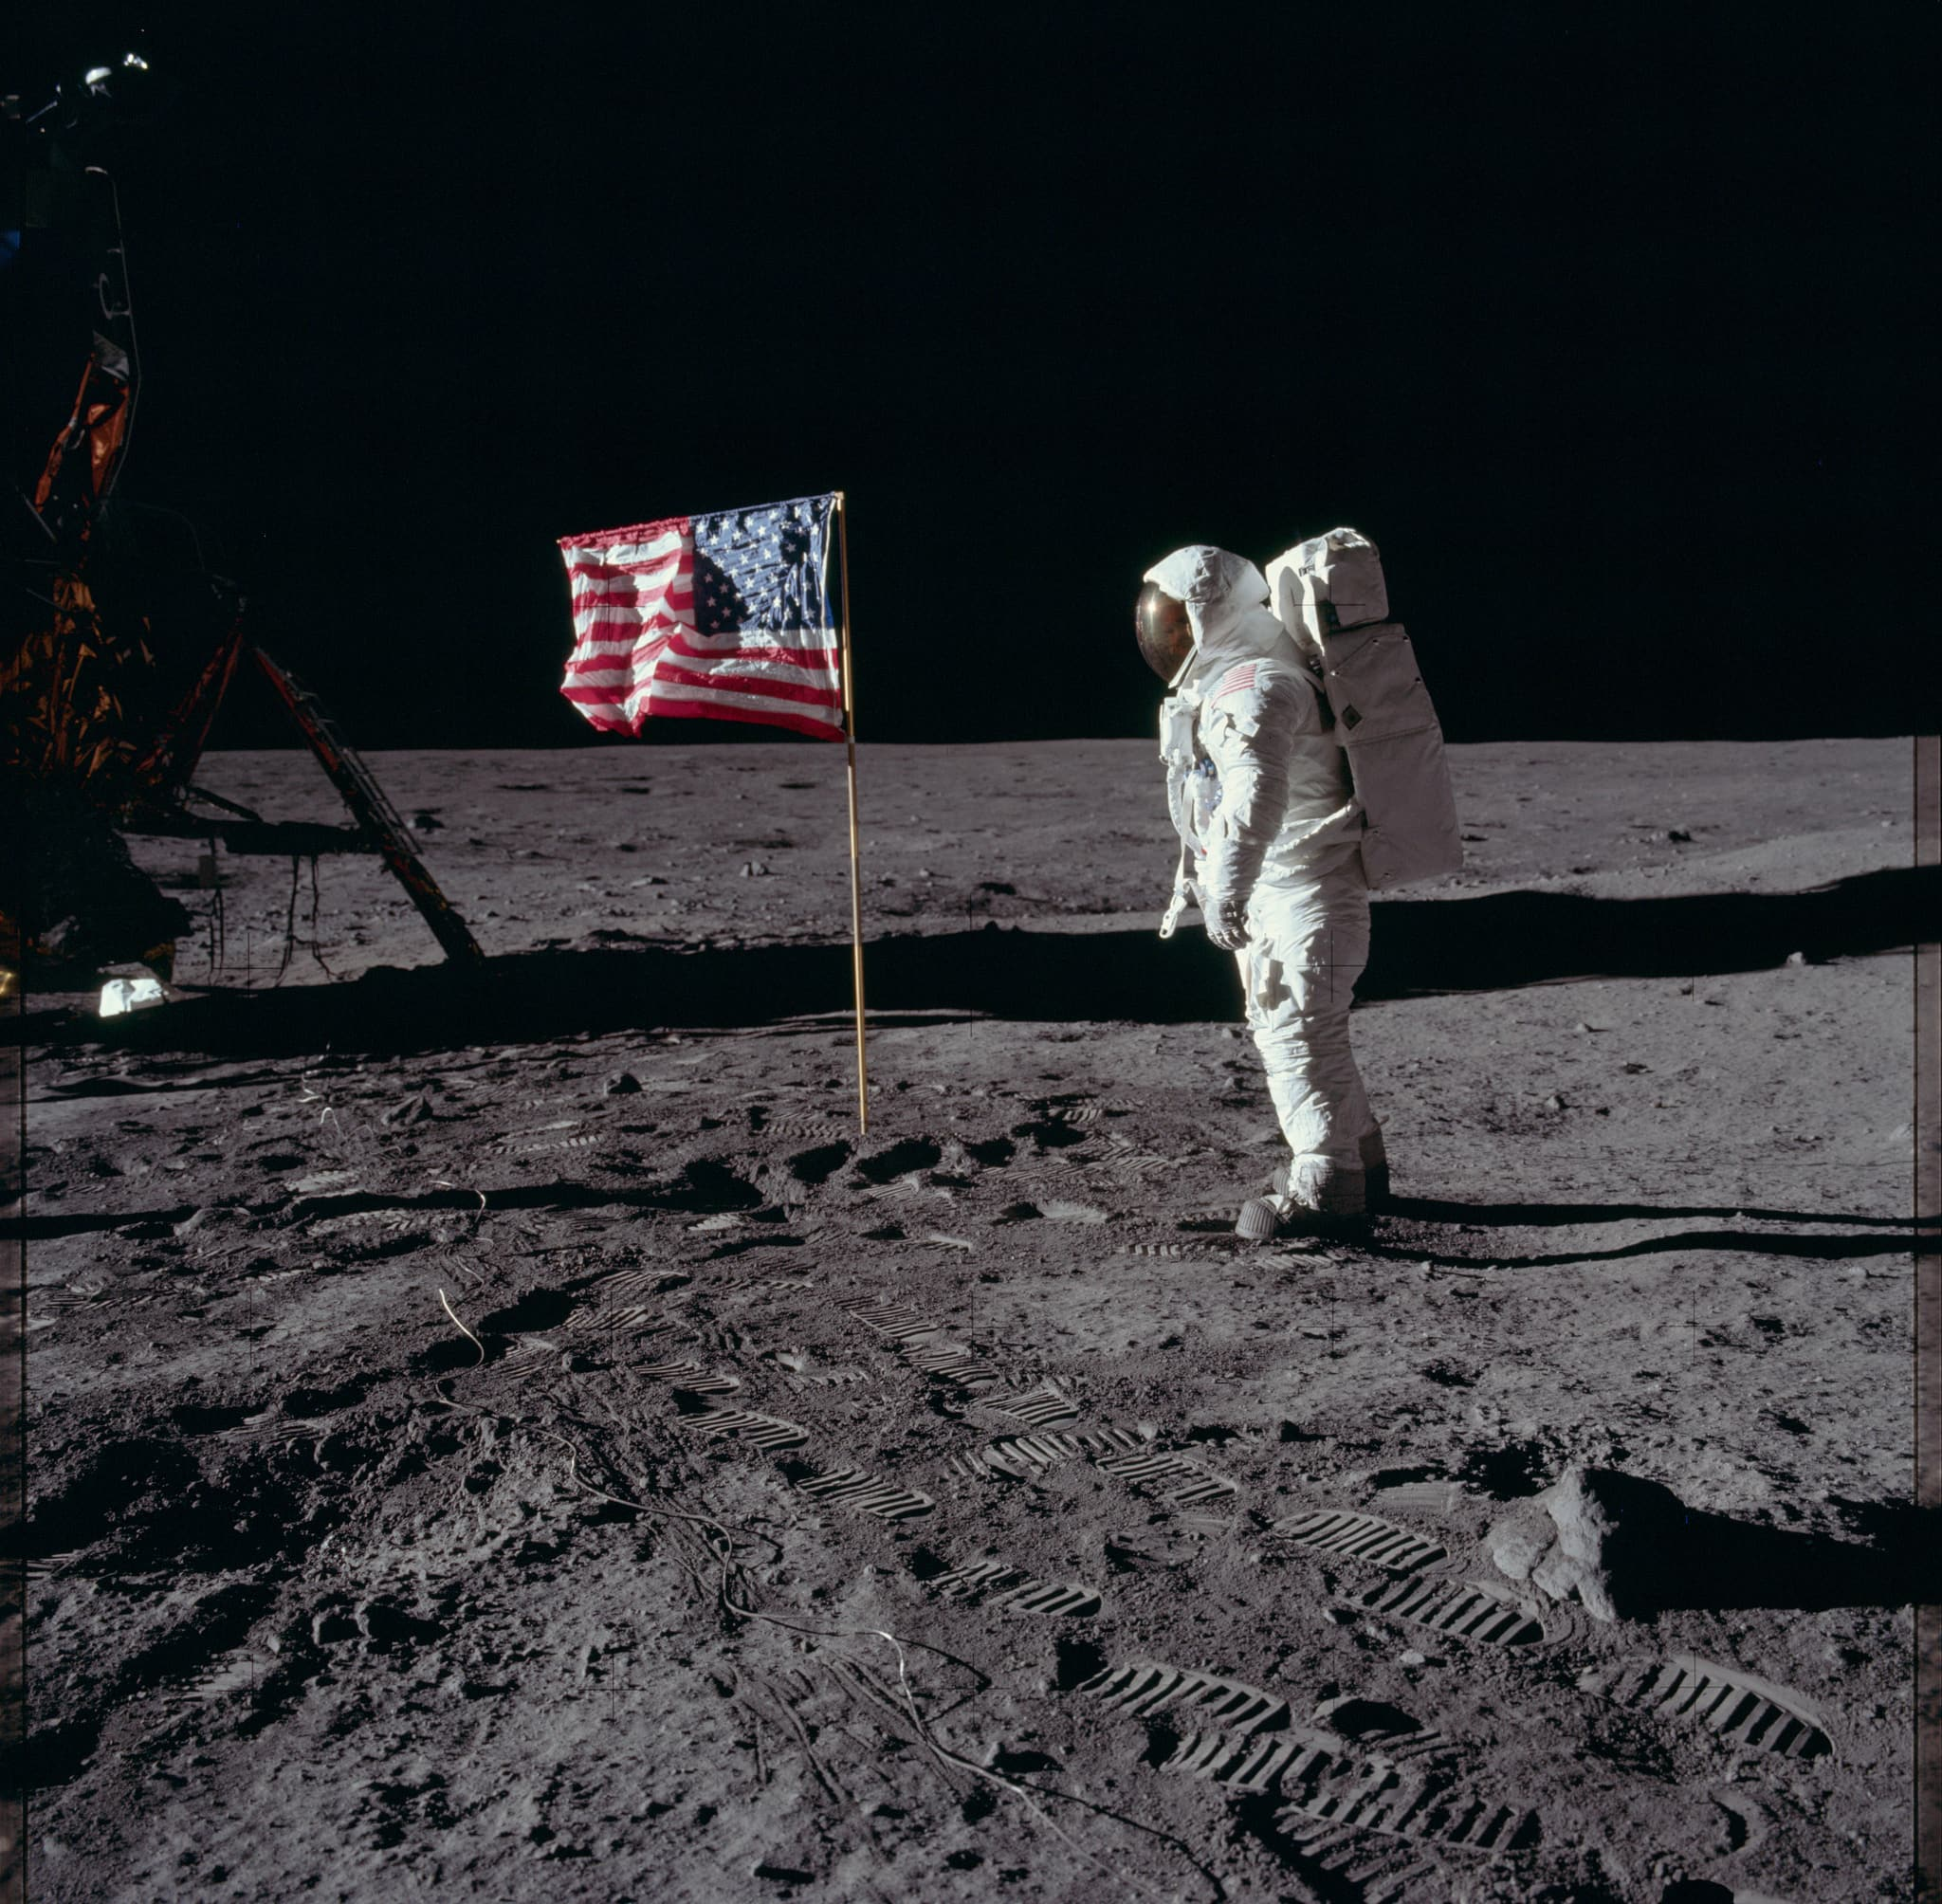 apollo 11 photos image